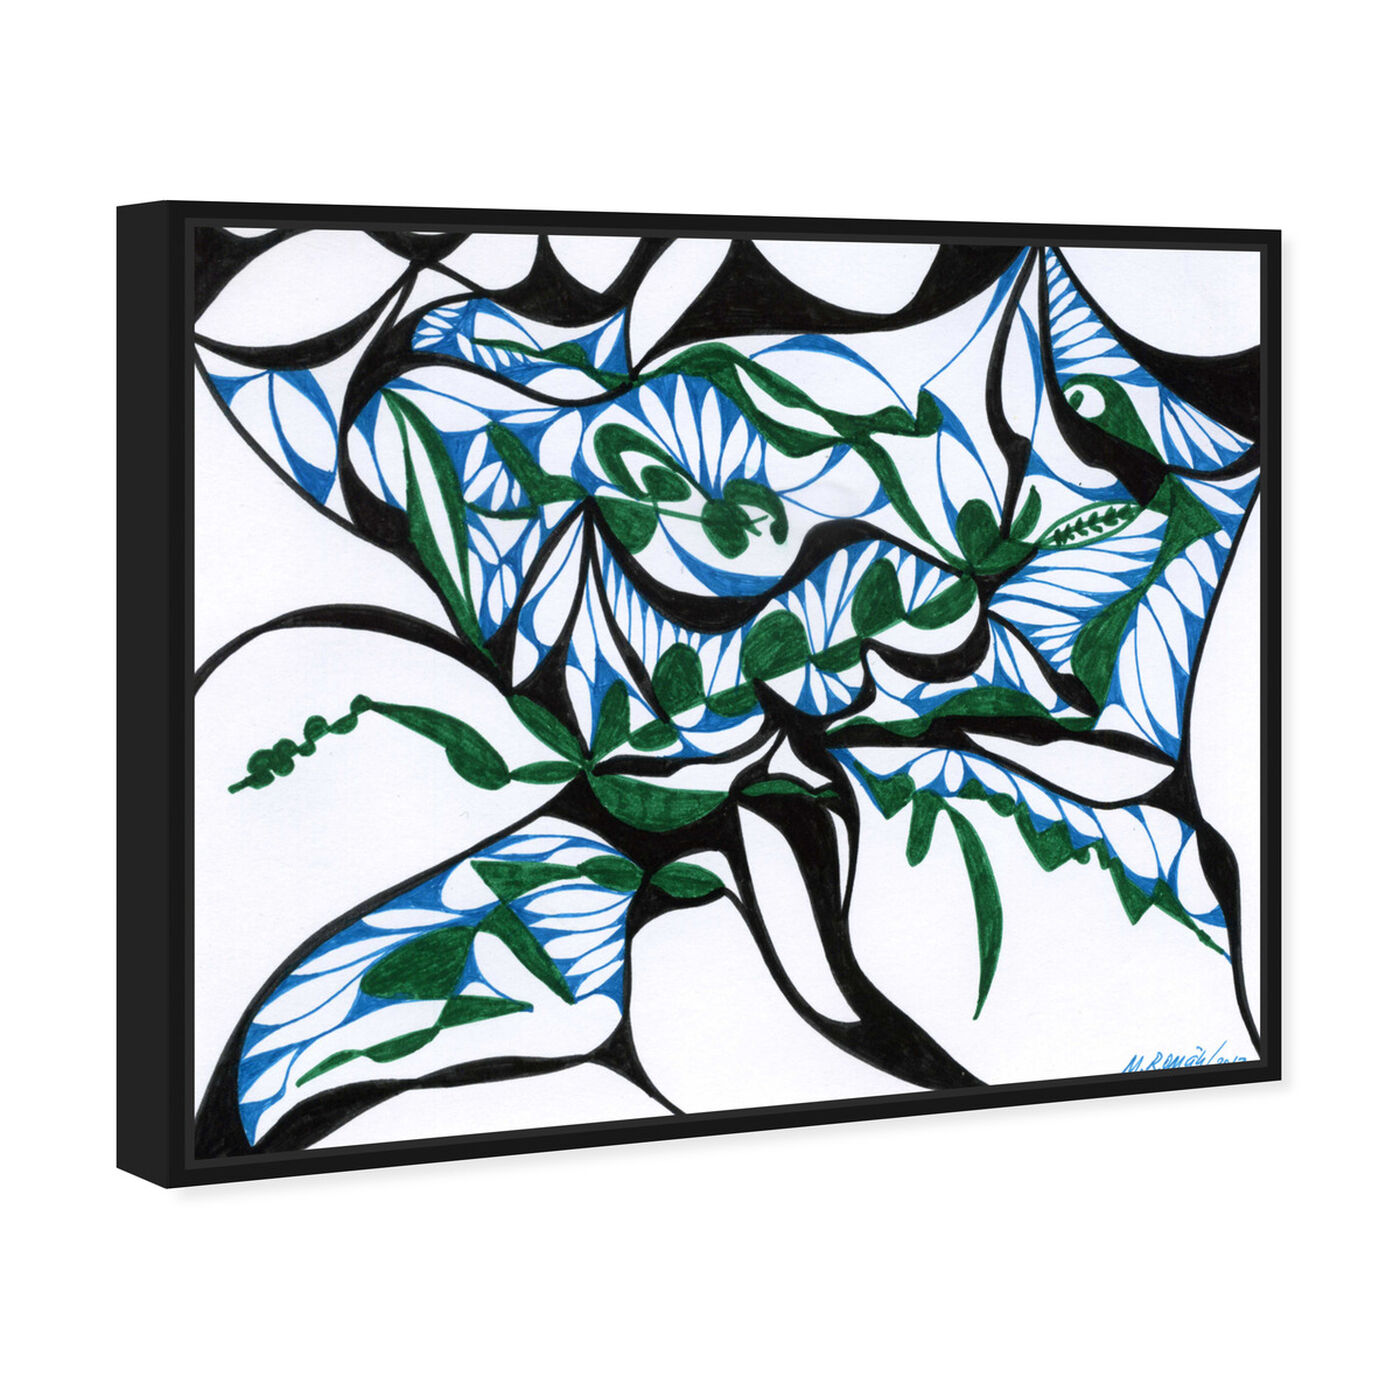 Angled view of Swirling Ferns featuring abstract and geometric art.